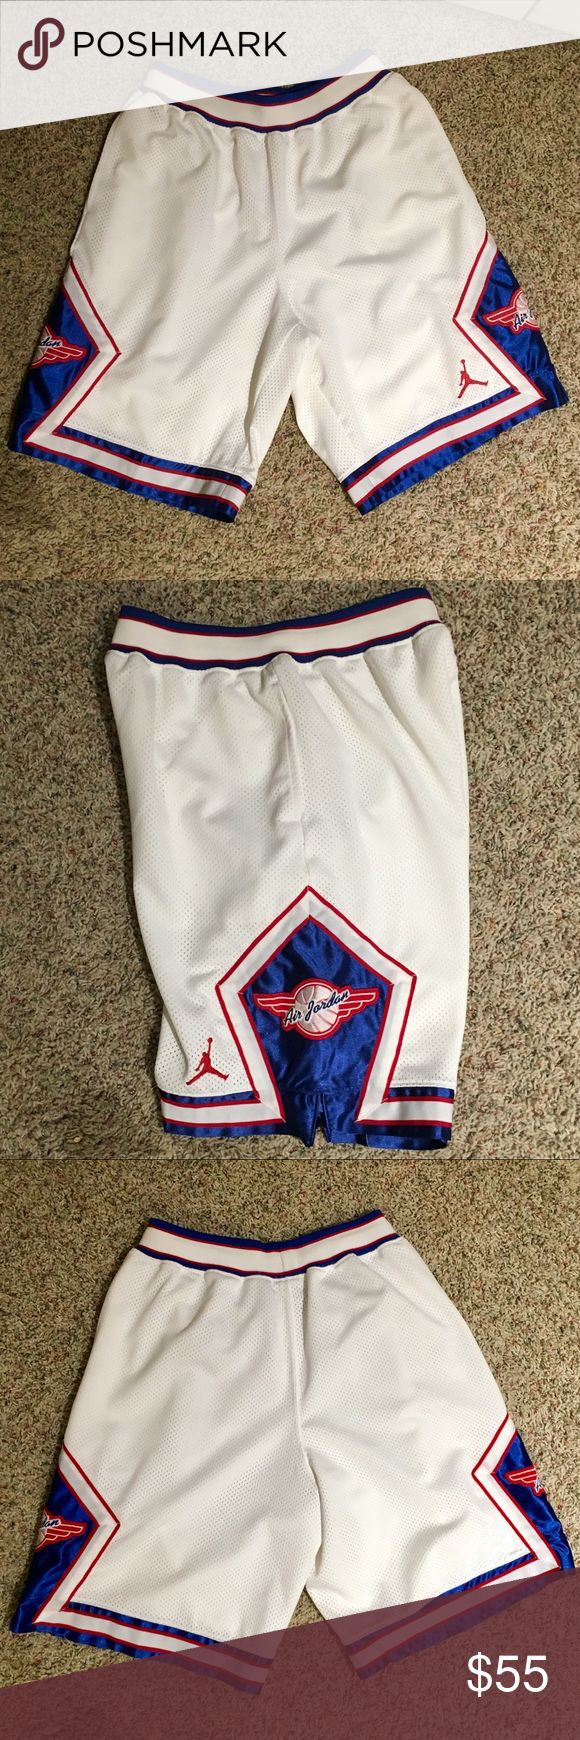 RARE JORDAN B-BALL SHORTS RARE - HARD TO FIND JORDAN BBALL SHORTS. KIDS XL BUT FITS A MENS SMALL. EXCELLENT CONDITION- WORN MAYBE ONCE Jordan Shorts Athletic